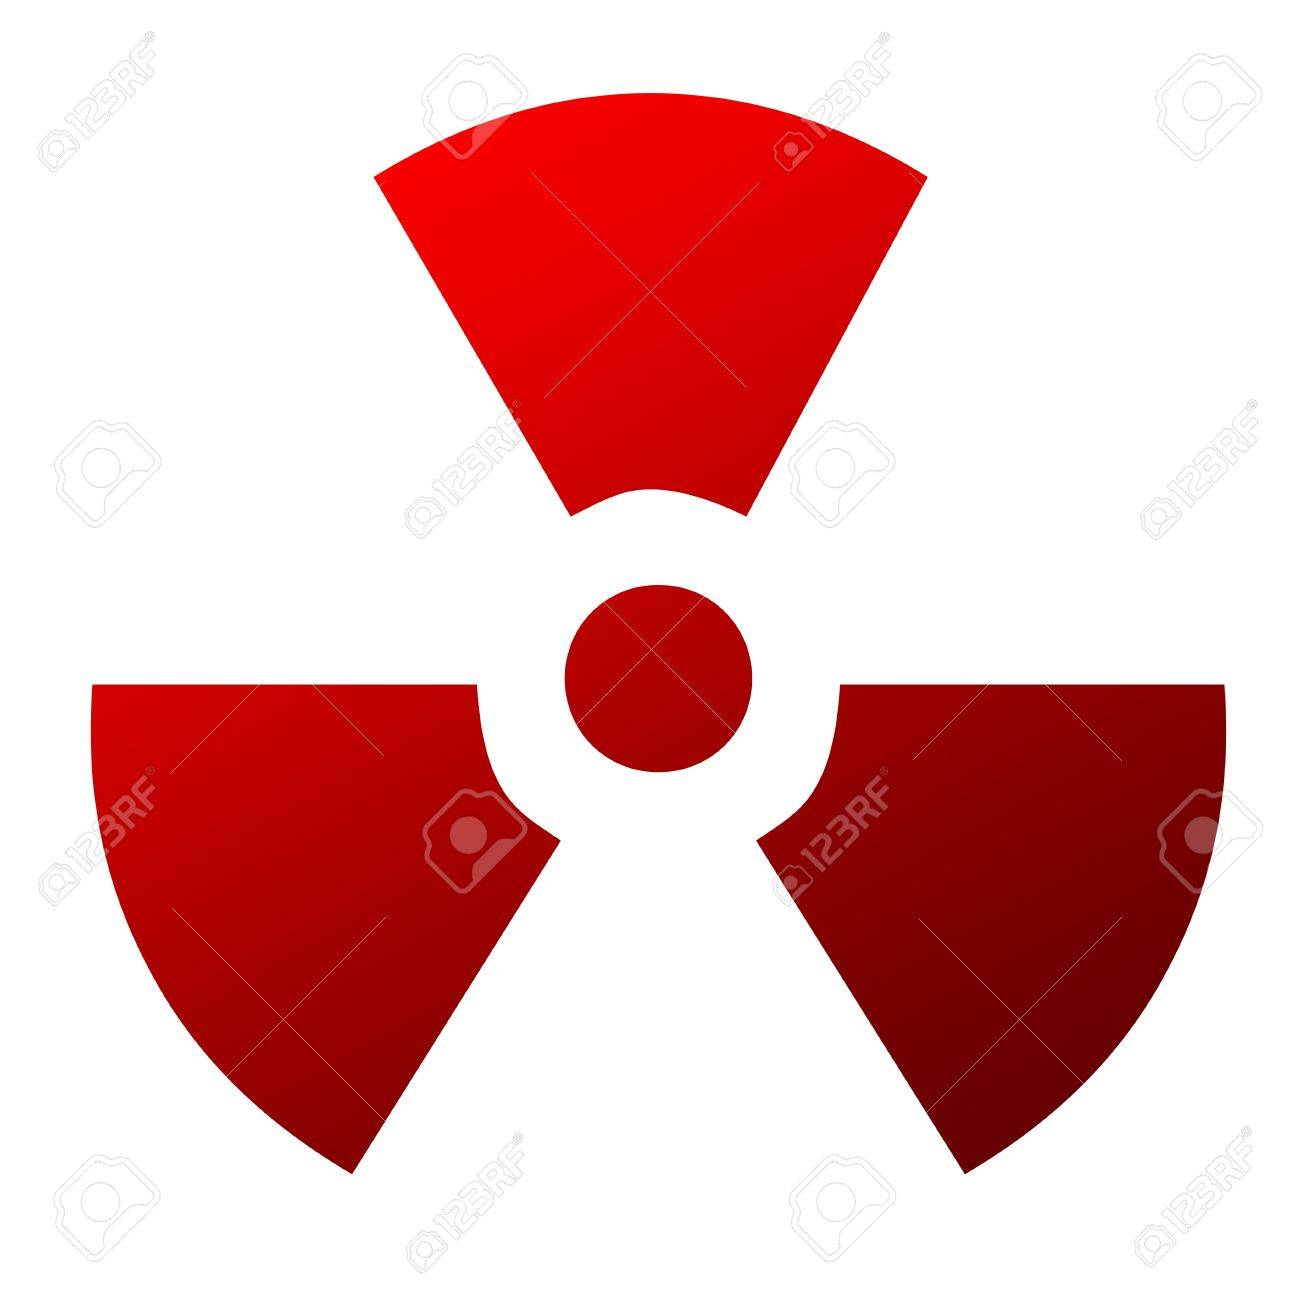 Red Radioactive Warning Sign Isolated On White Background Stock